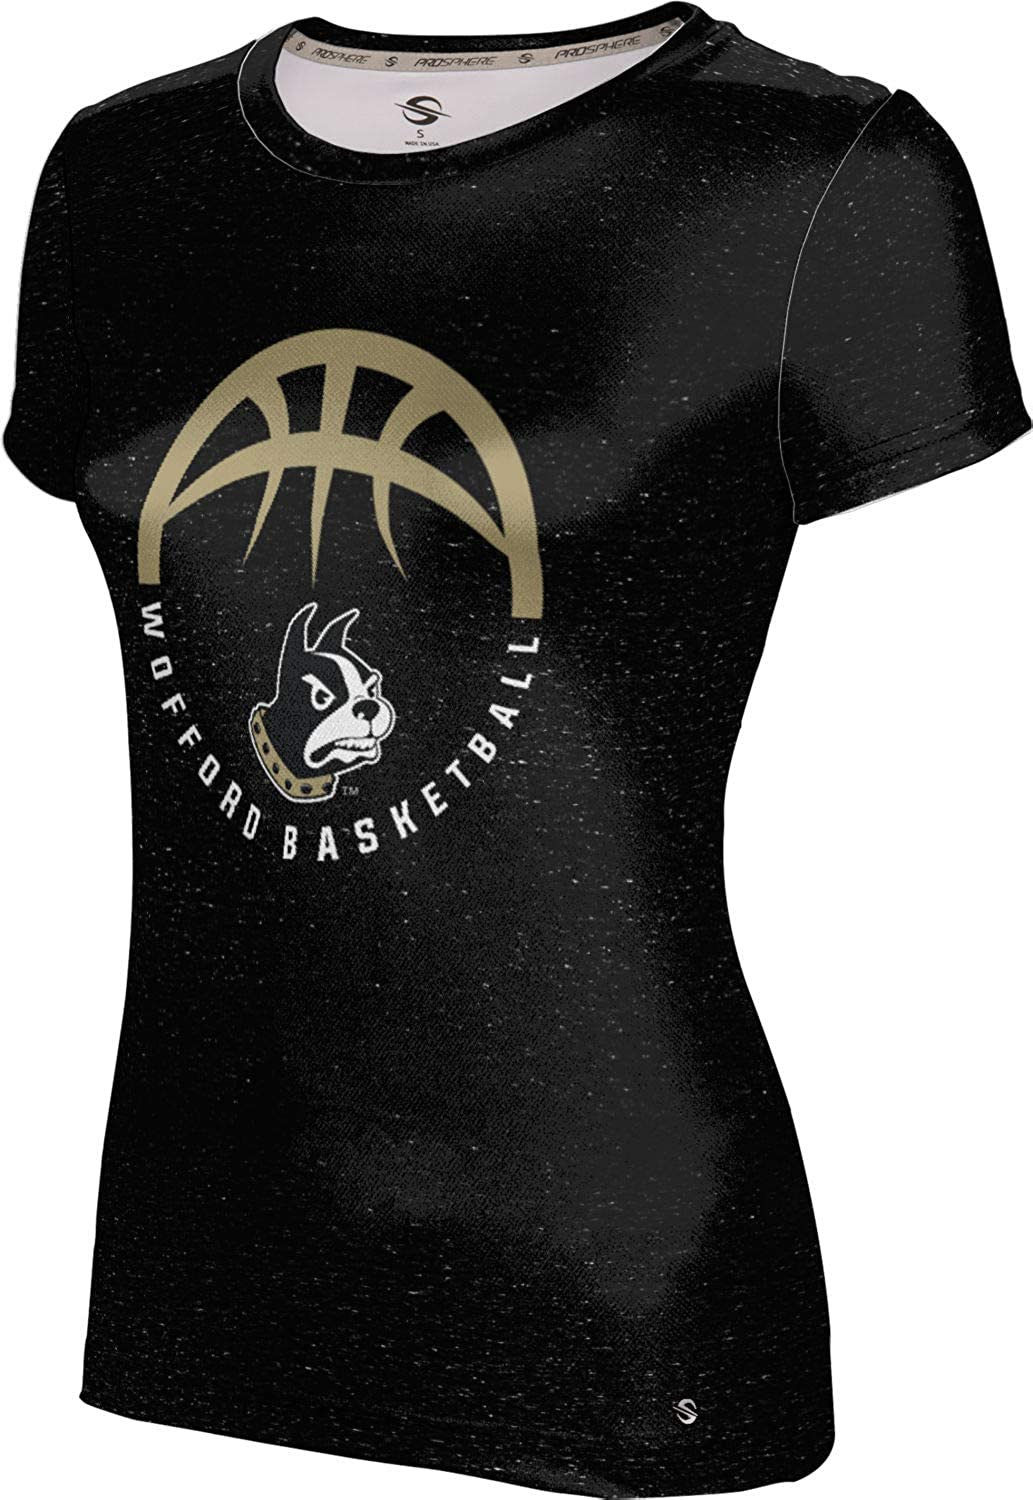 ProSphere Wofford College Basketball Girls' Performance T-Shirt (Heather)